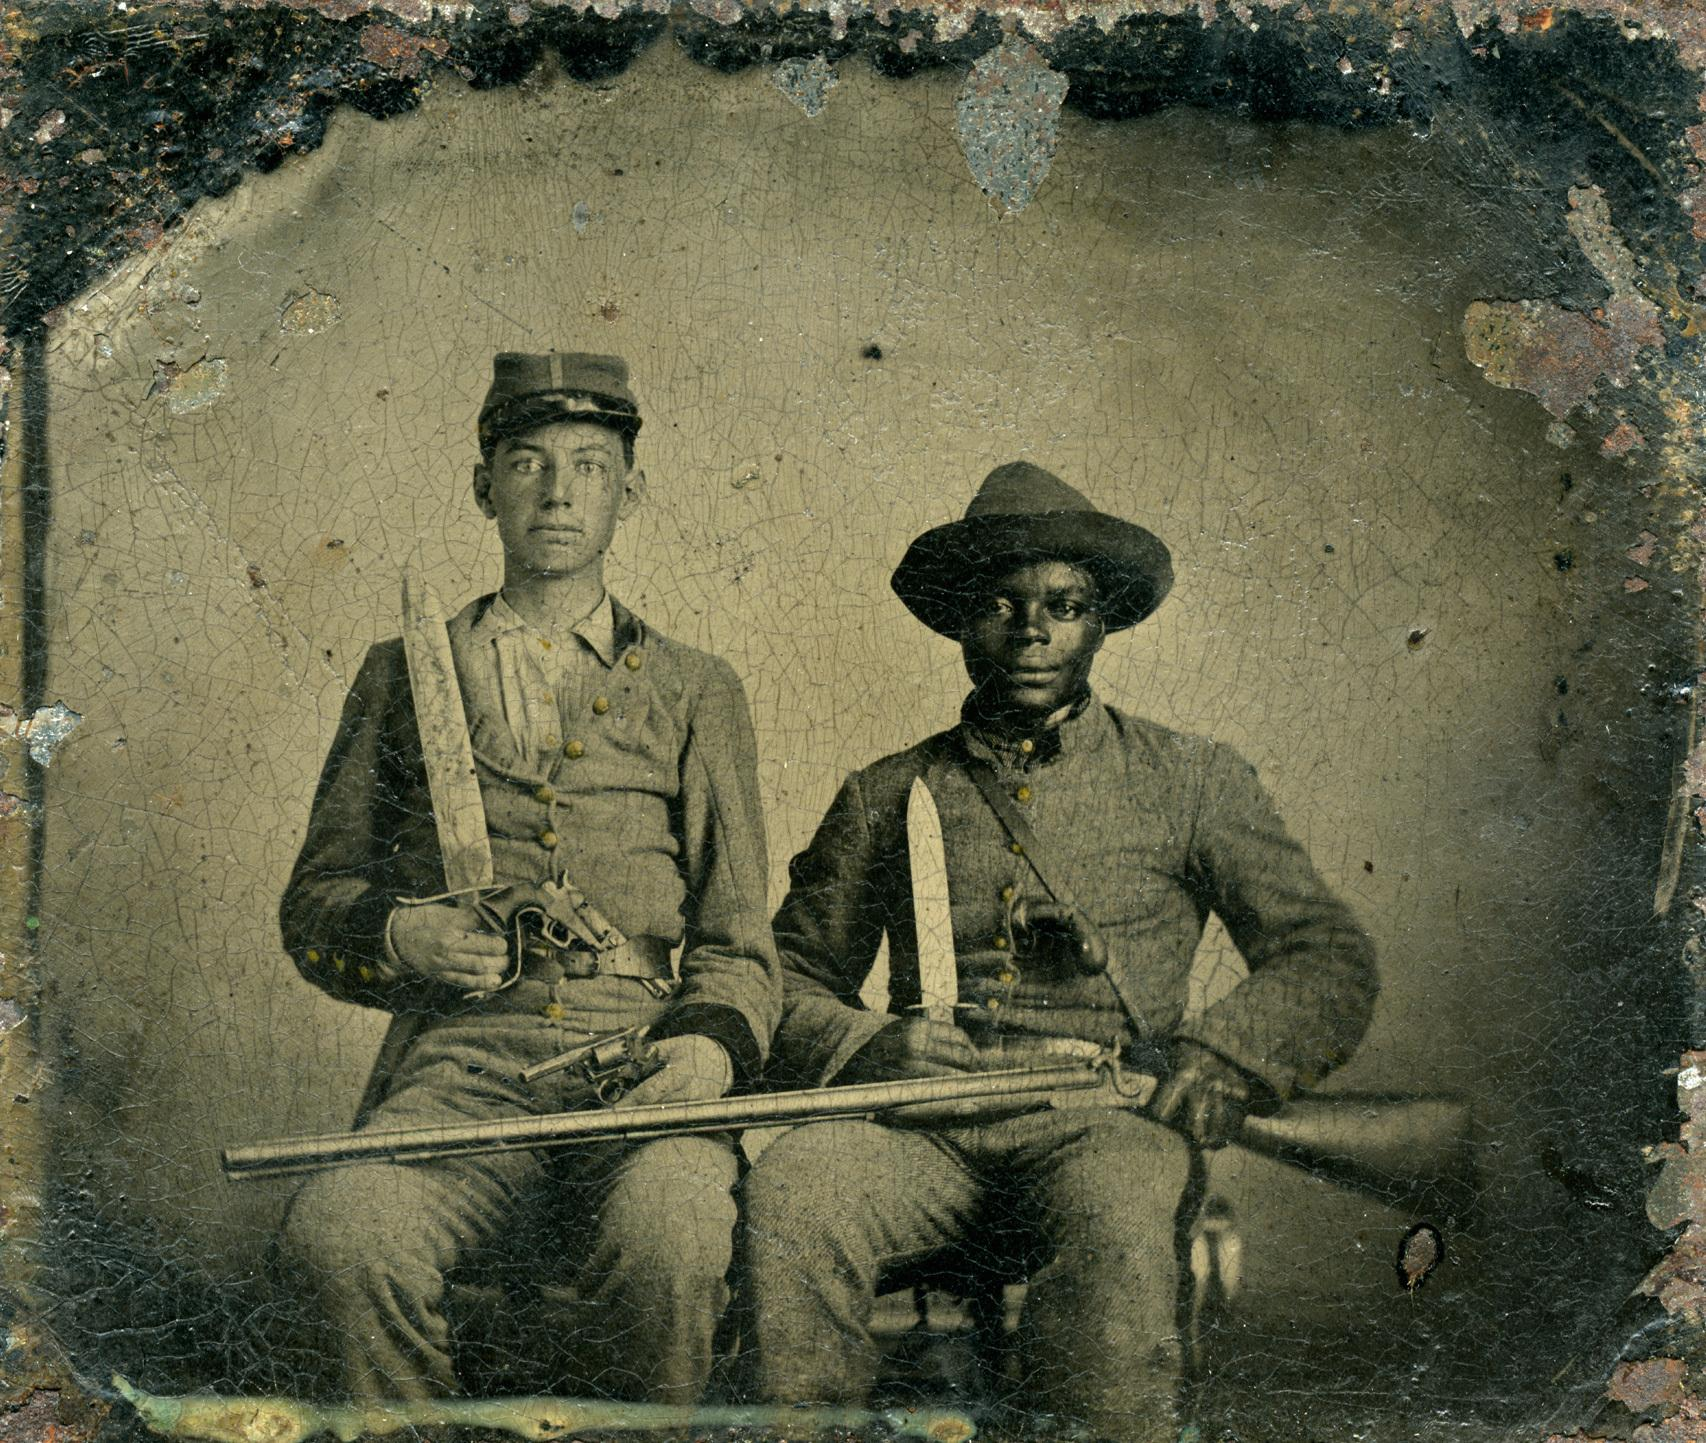 the issue of slavery in the civil war Civil war, american the chief existed between ordinary americans living in the north and those living in the south in the years before the civil war what important issues are reflected in the differences between life in the north and the south a debate against slavery prior to the.